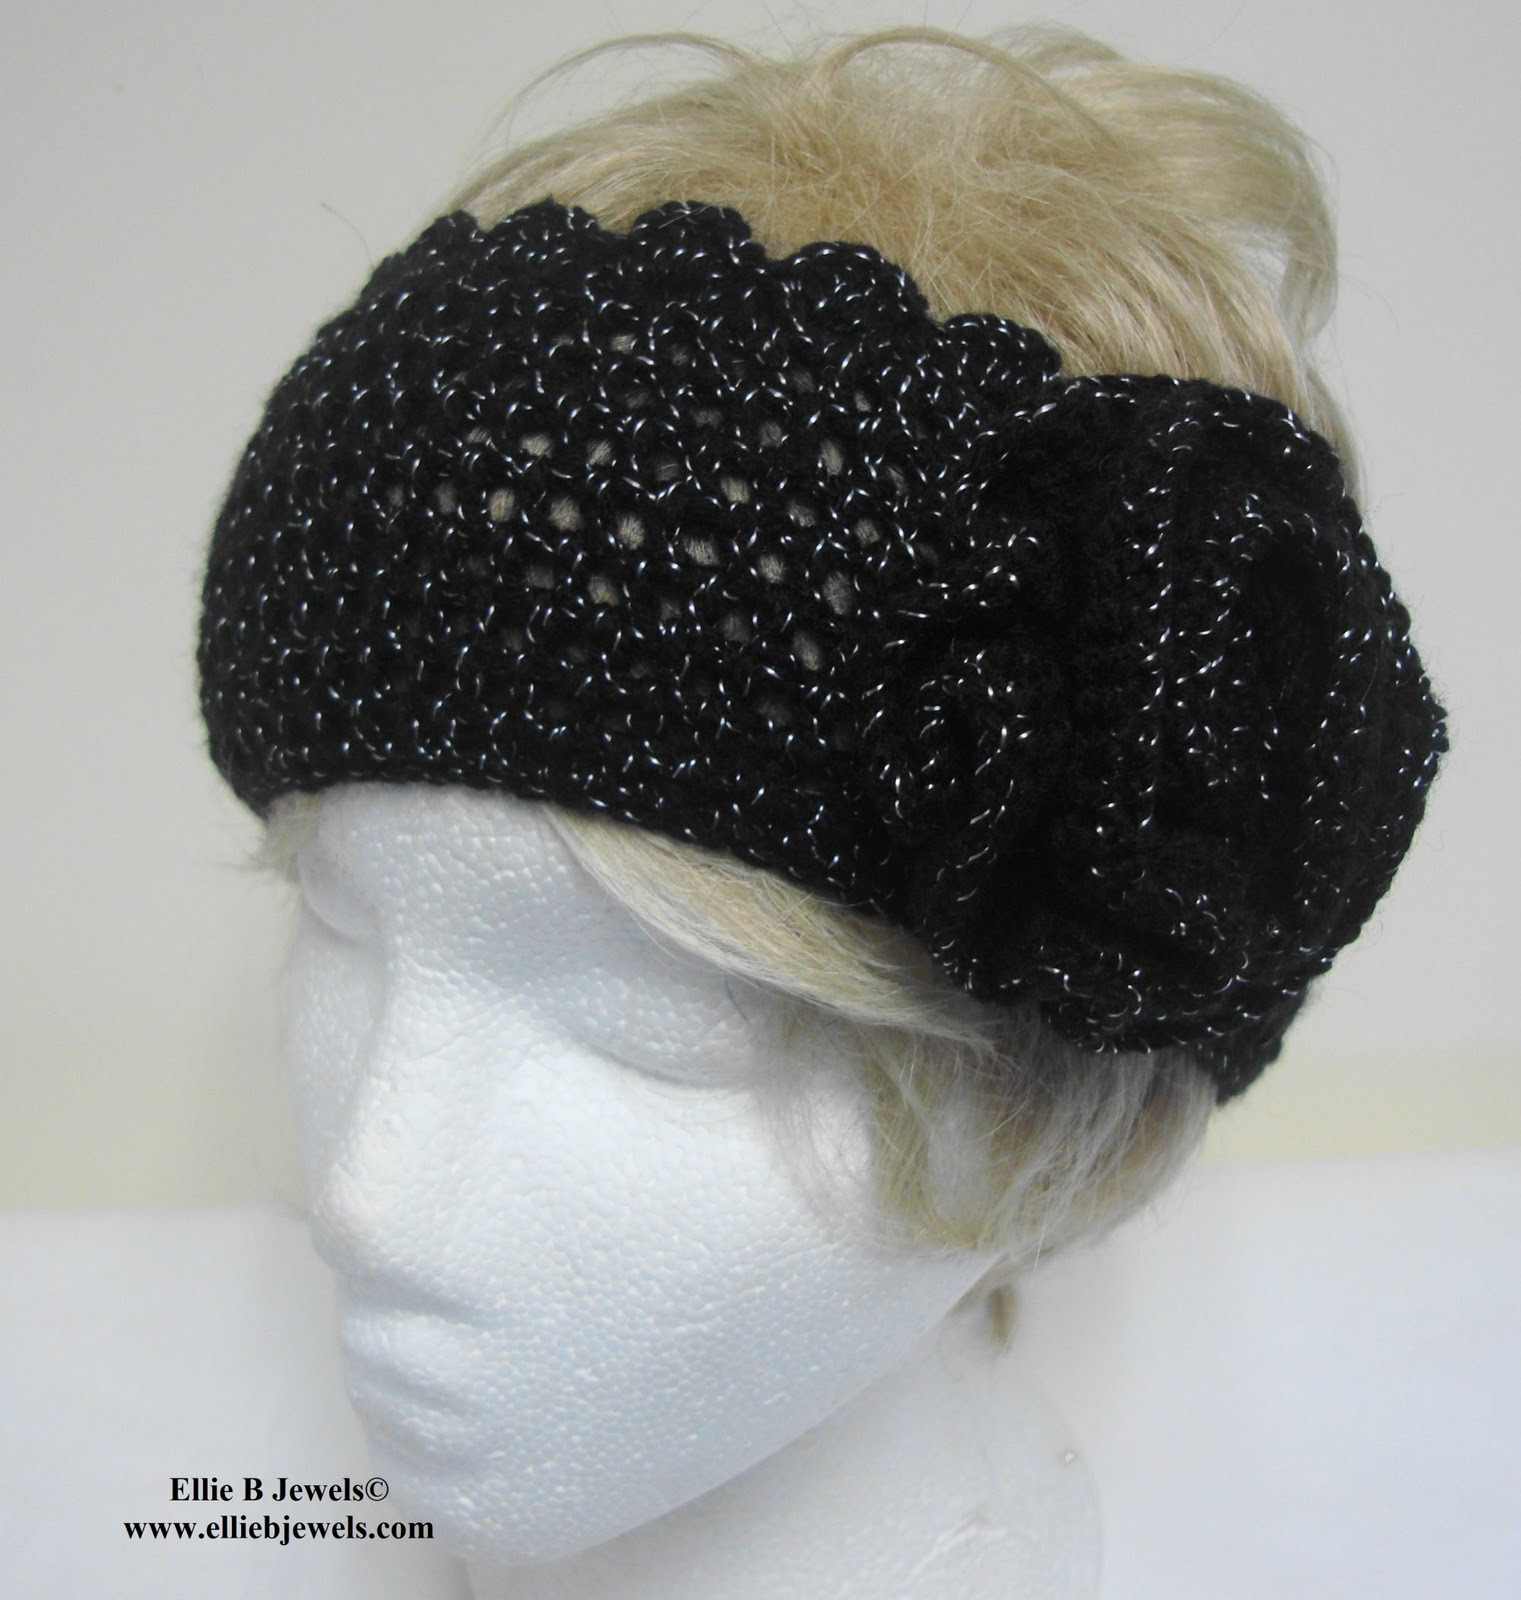 Crochet Ear Warmer : From Beads to Buttons: Crochet Ear Warmer Headbands